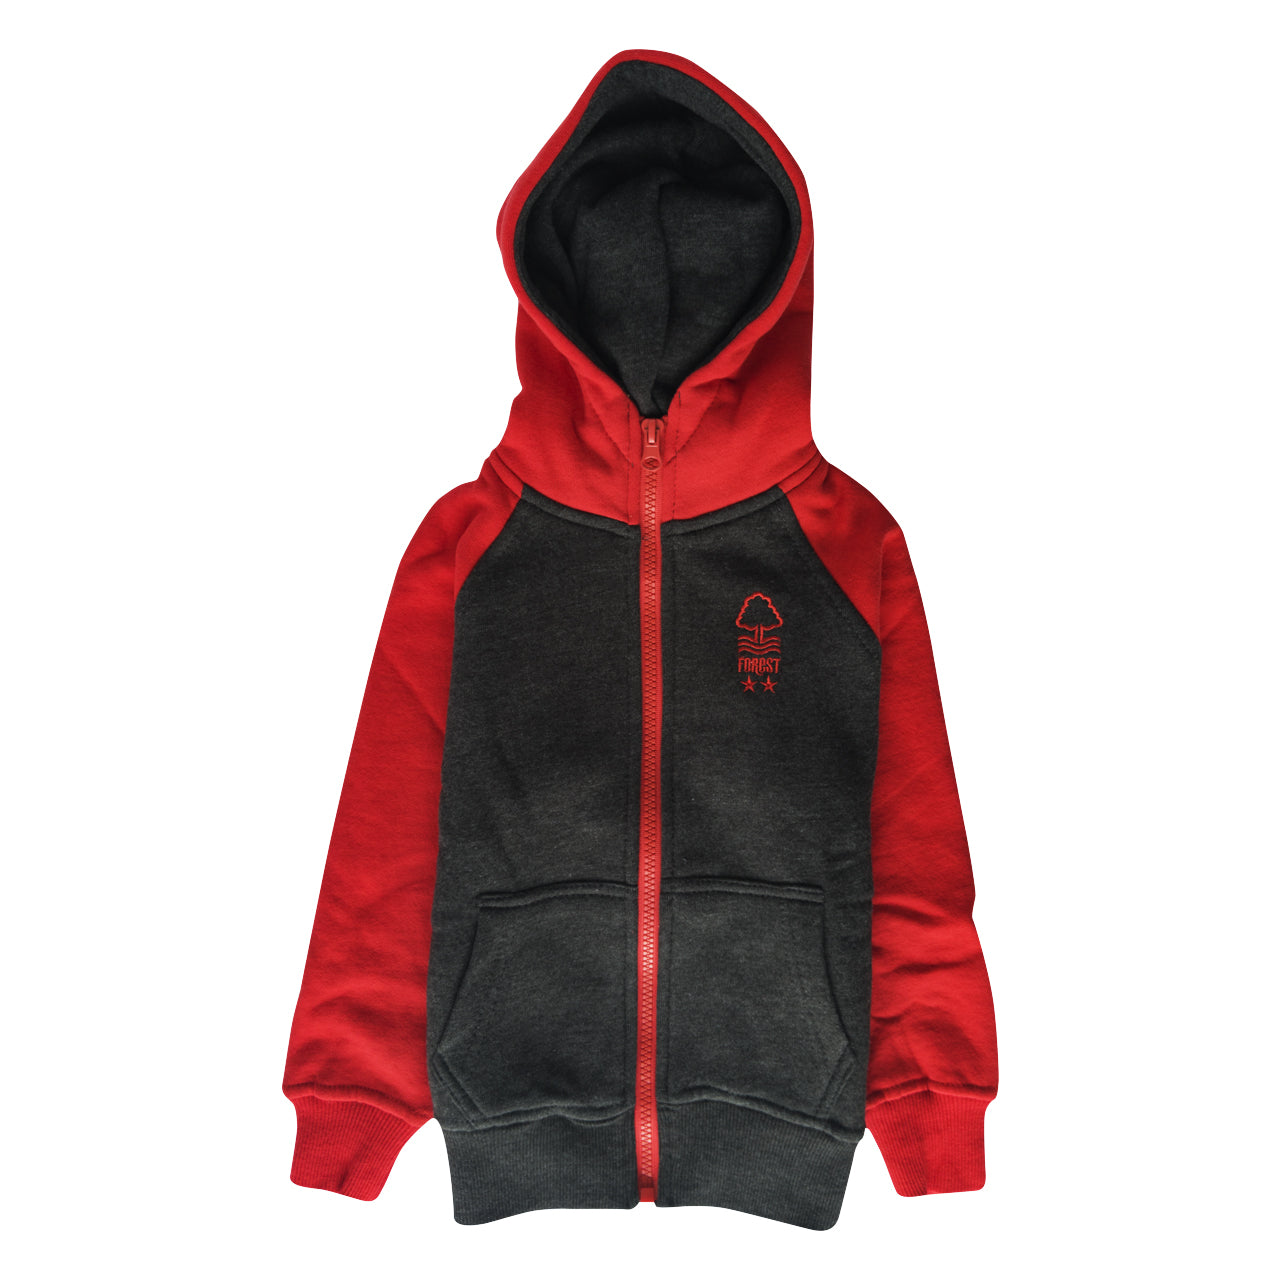 NFFC Baby Red/Charcoal Zip Hoodie - Nottingham Forest